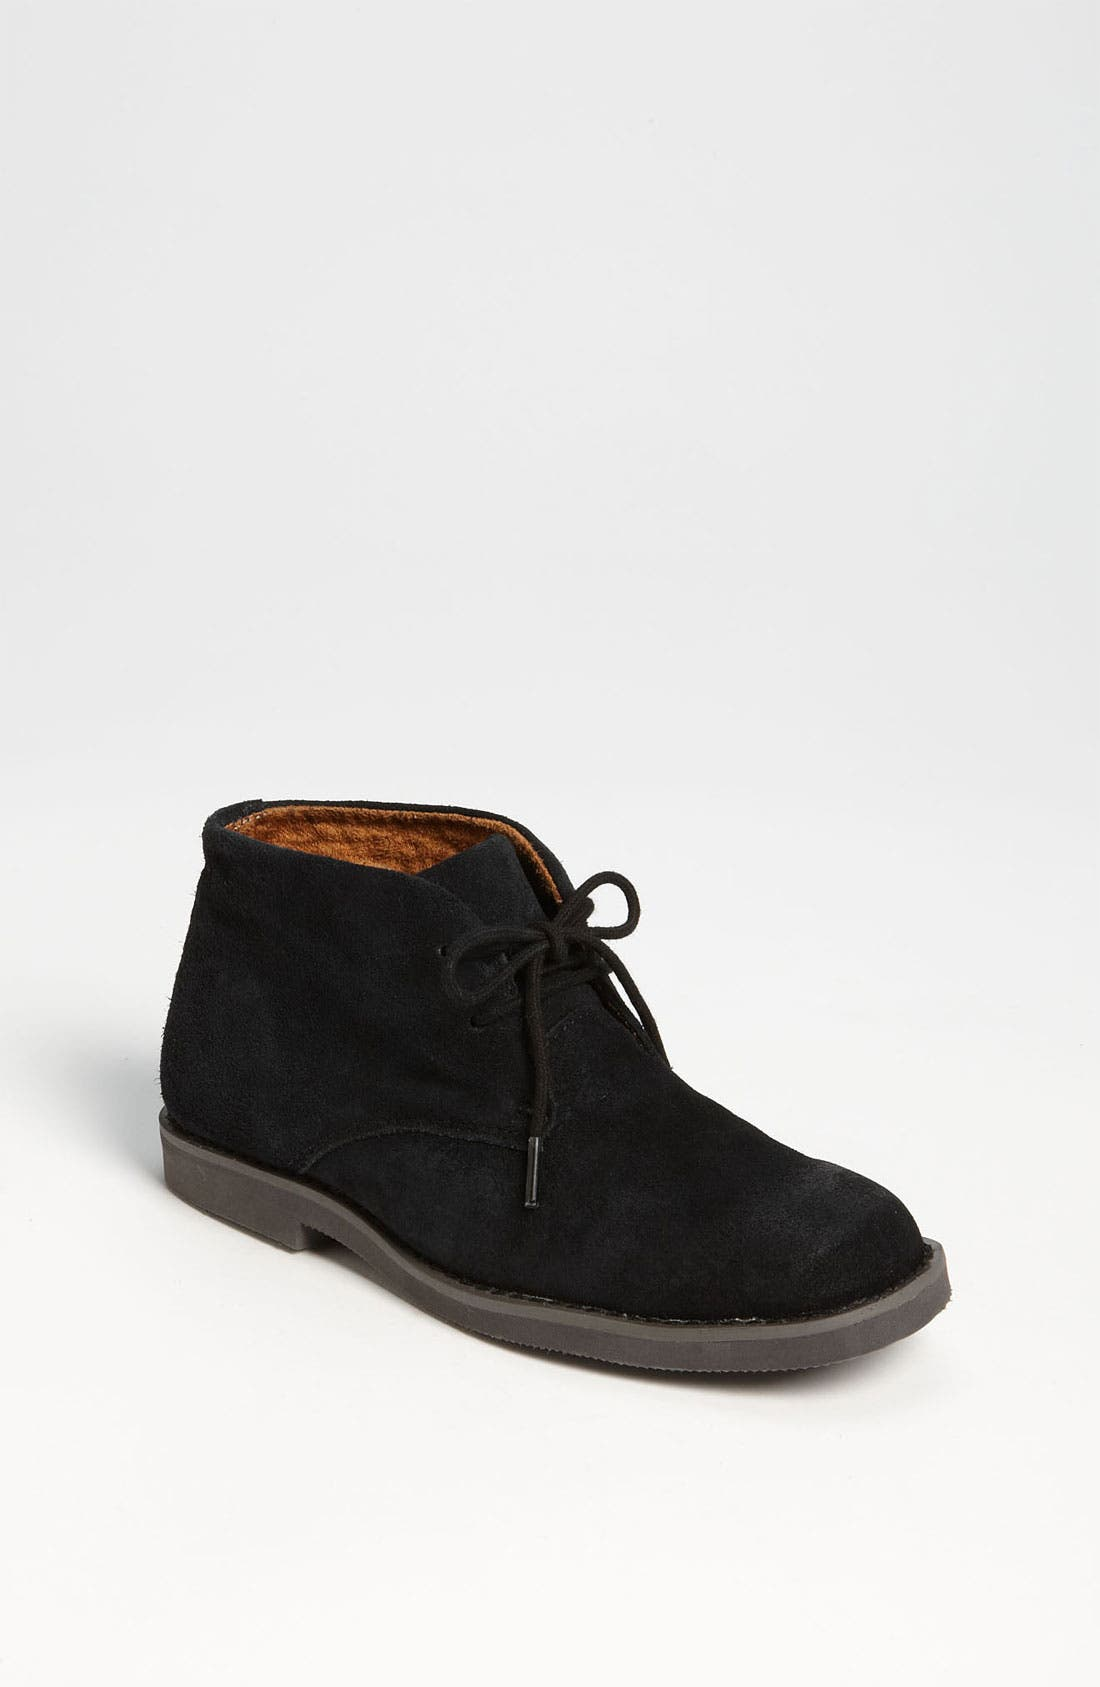 Alternate Image 1 Selected - Florsheim 'Quinlan' Chukka Boot (Toddler, Little Kid & Big Kid)